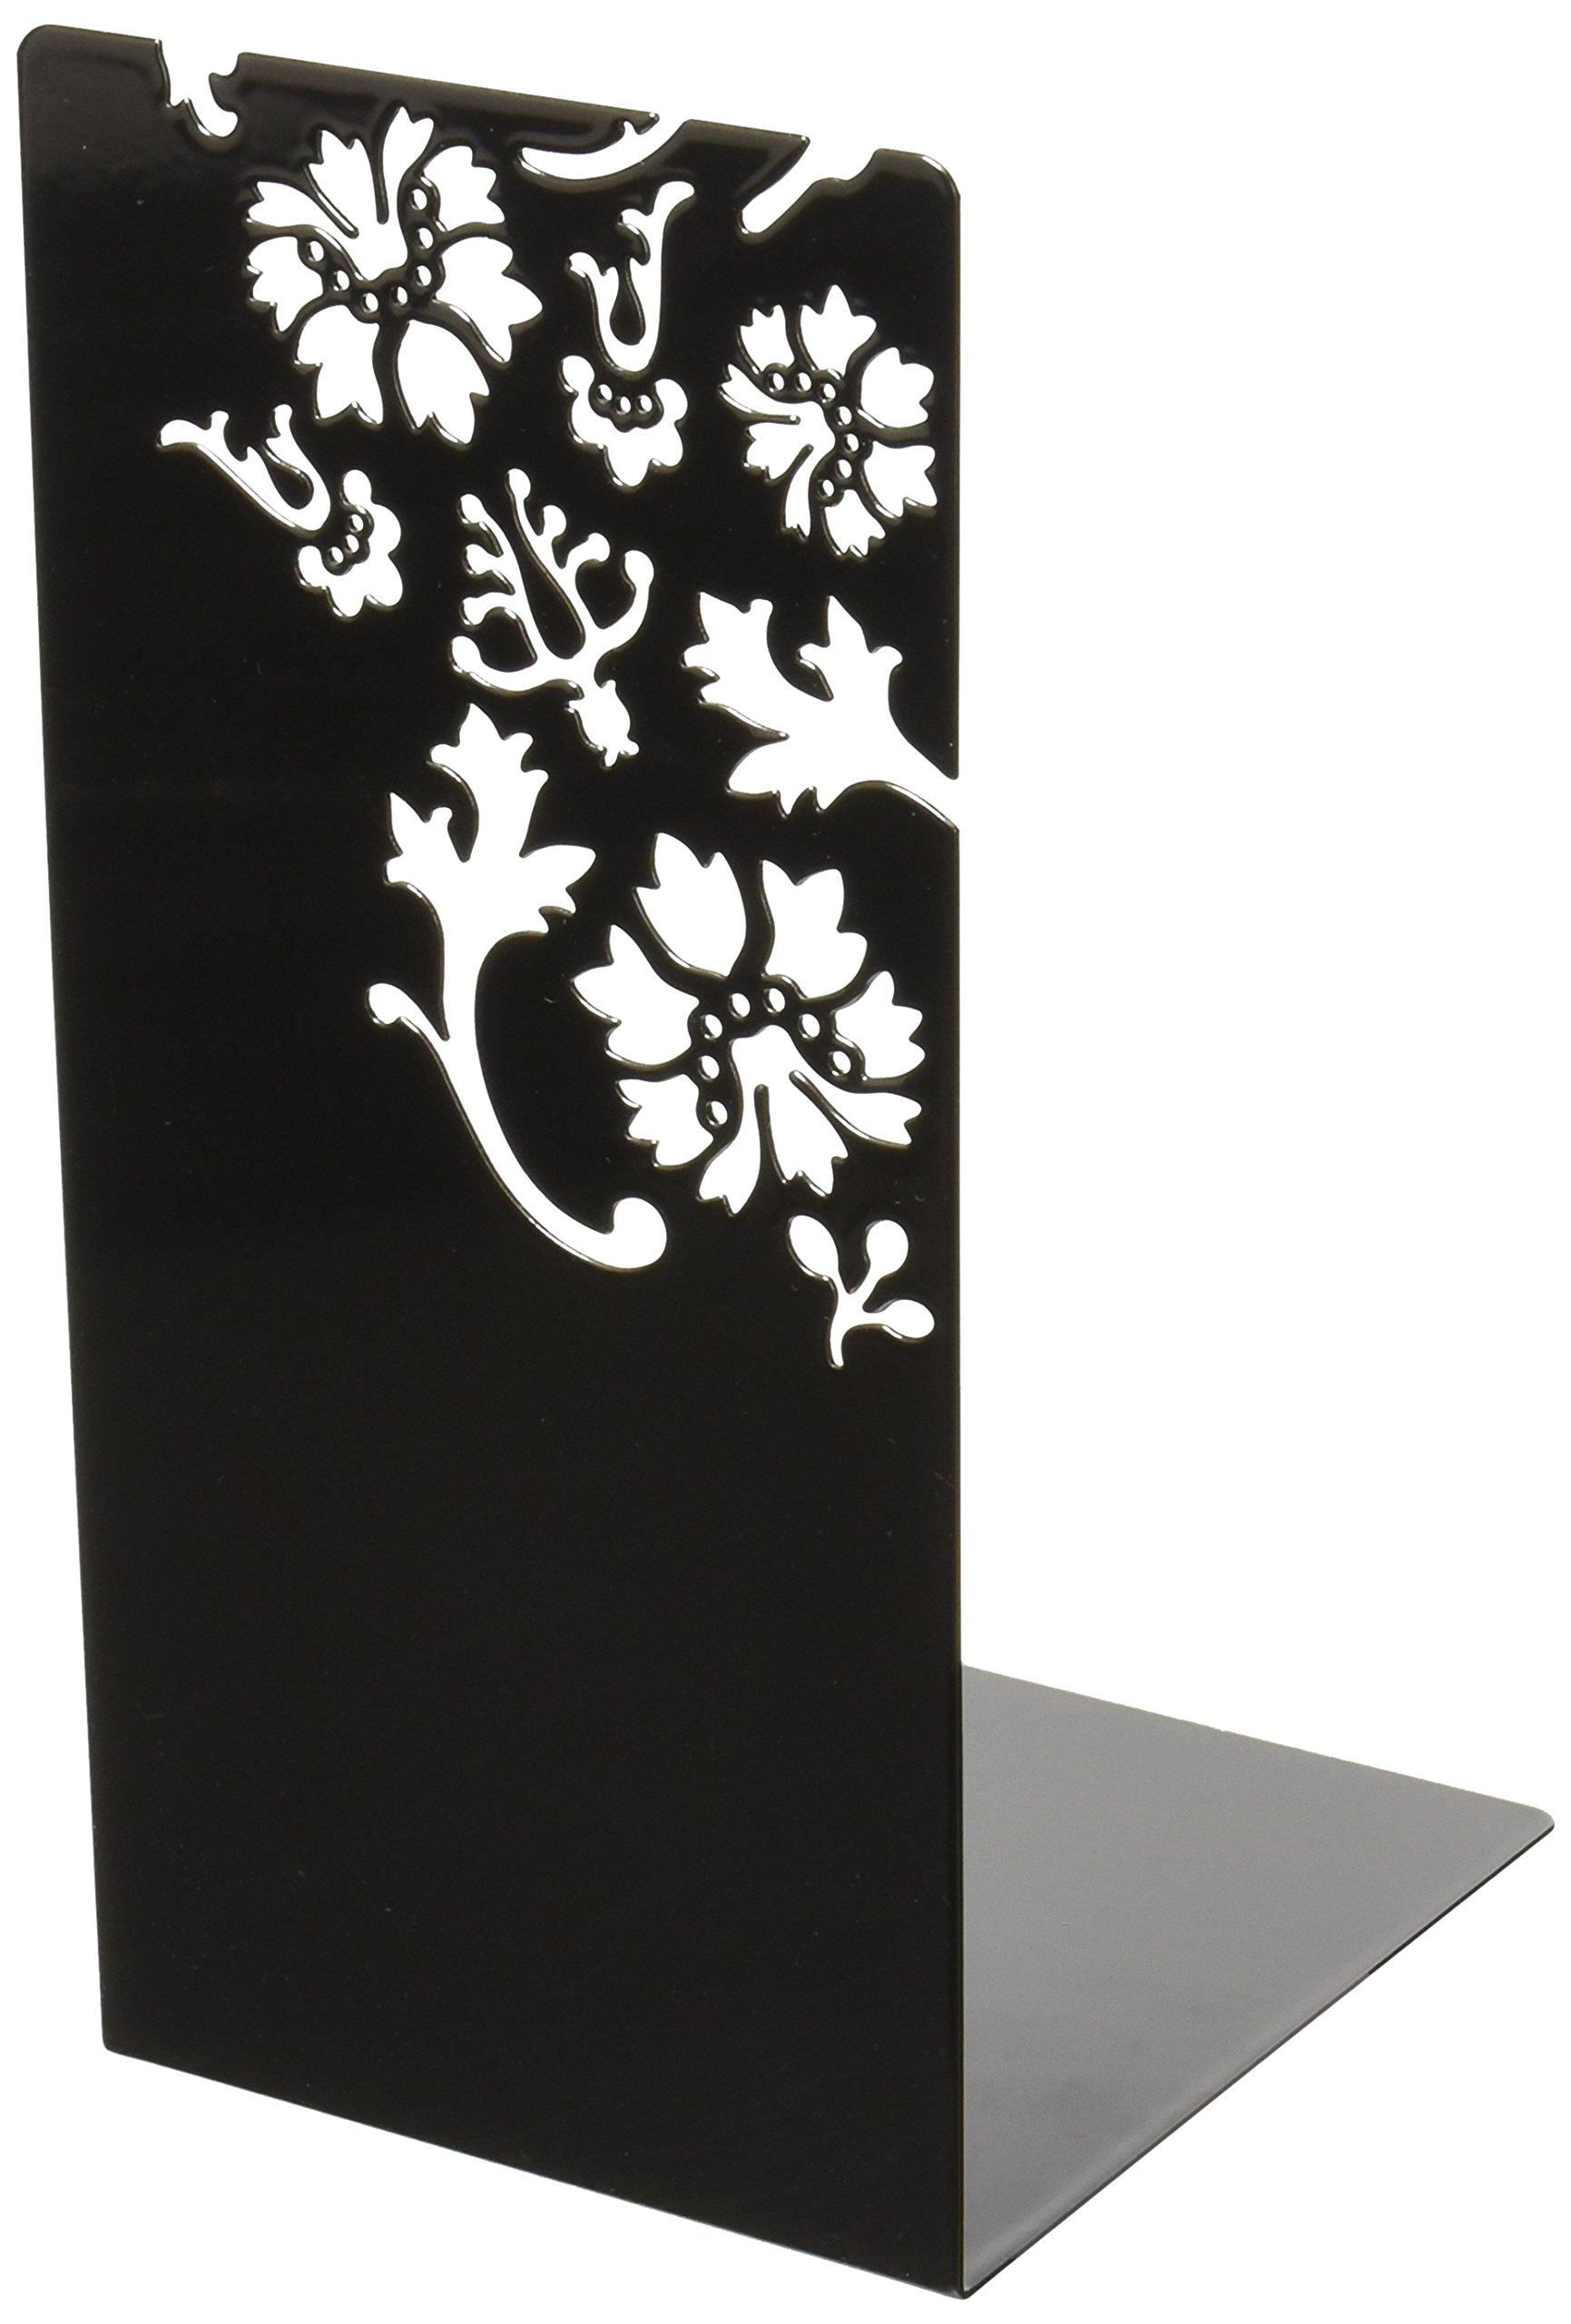 YAMAZAKI home Kirie L-Book End, Large, Black